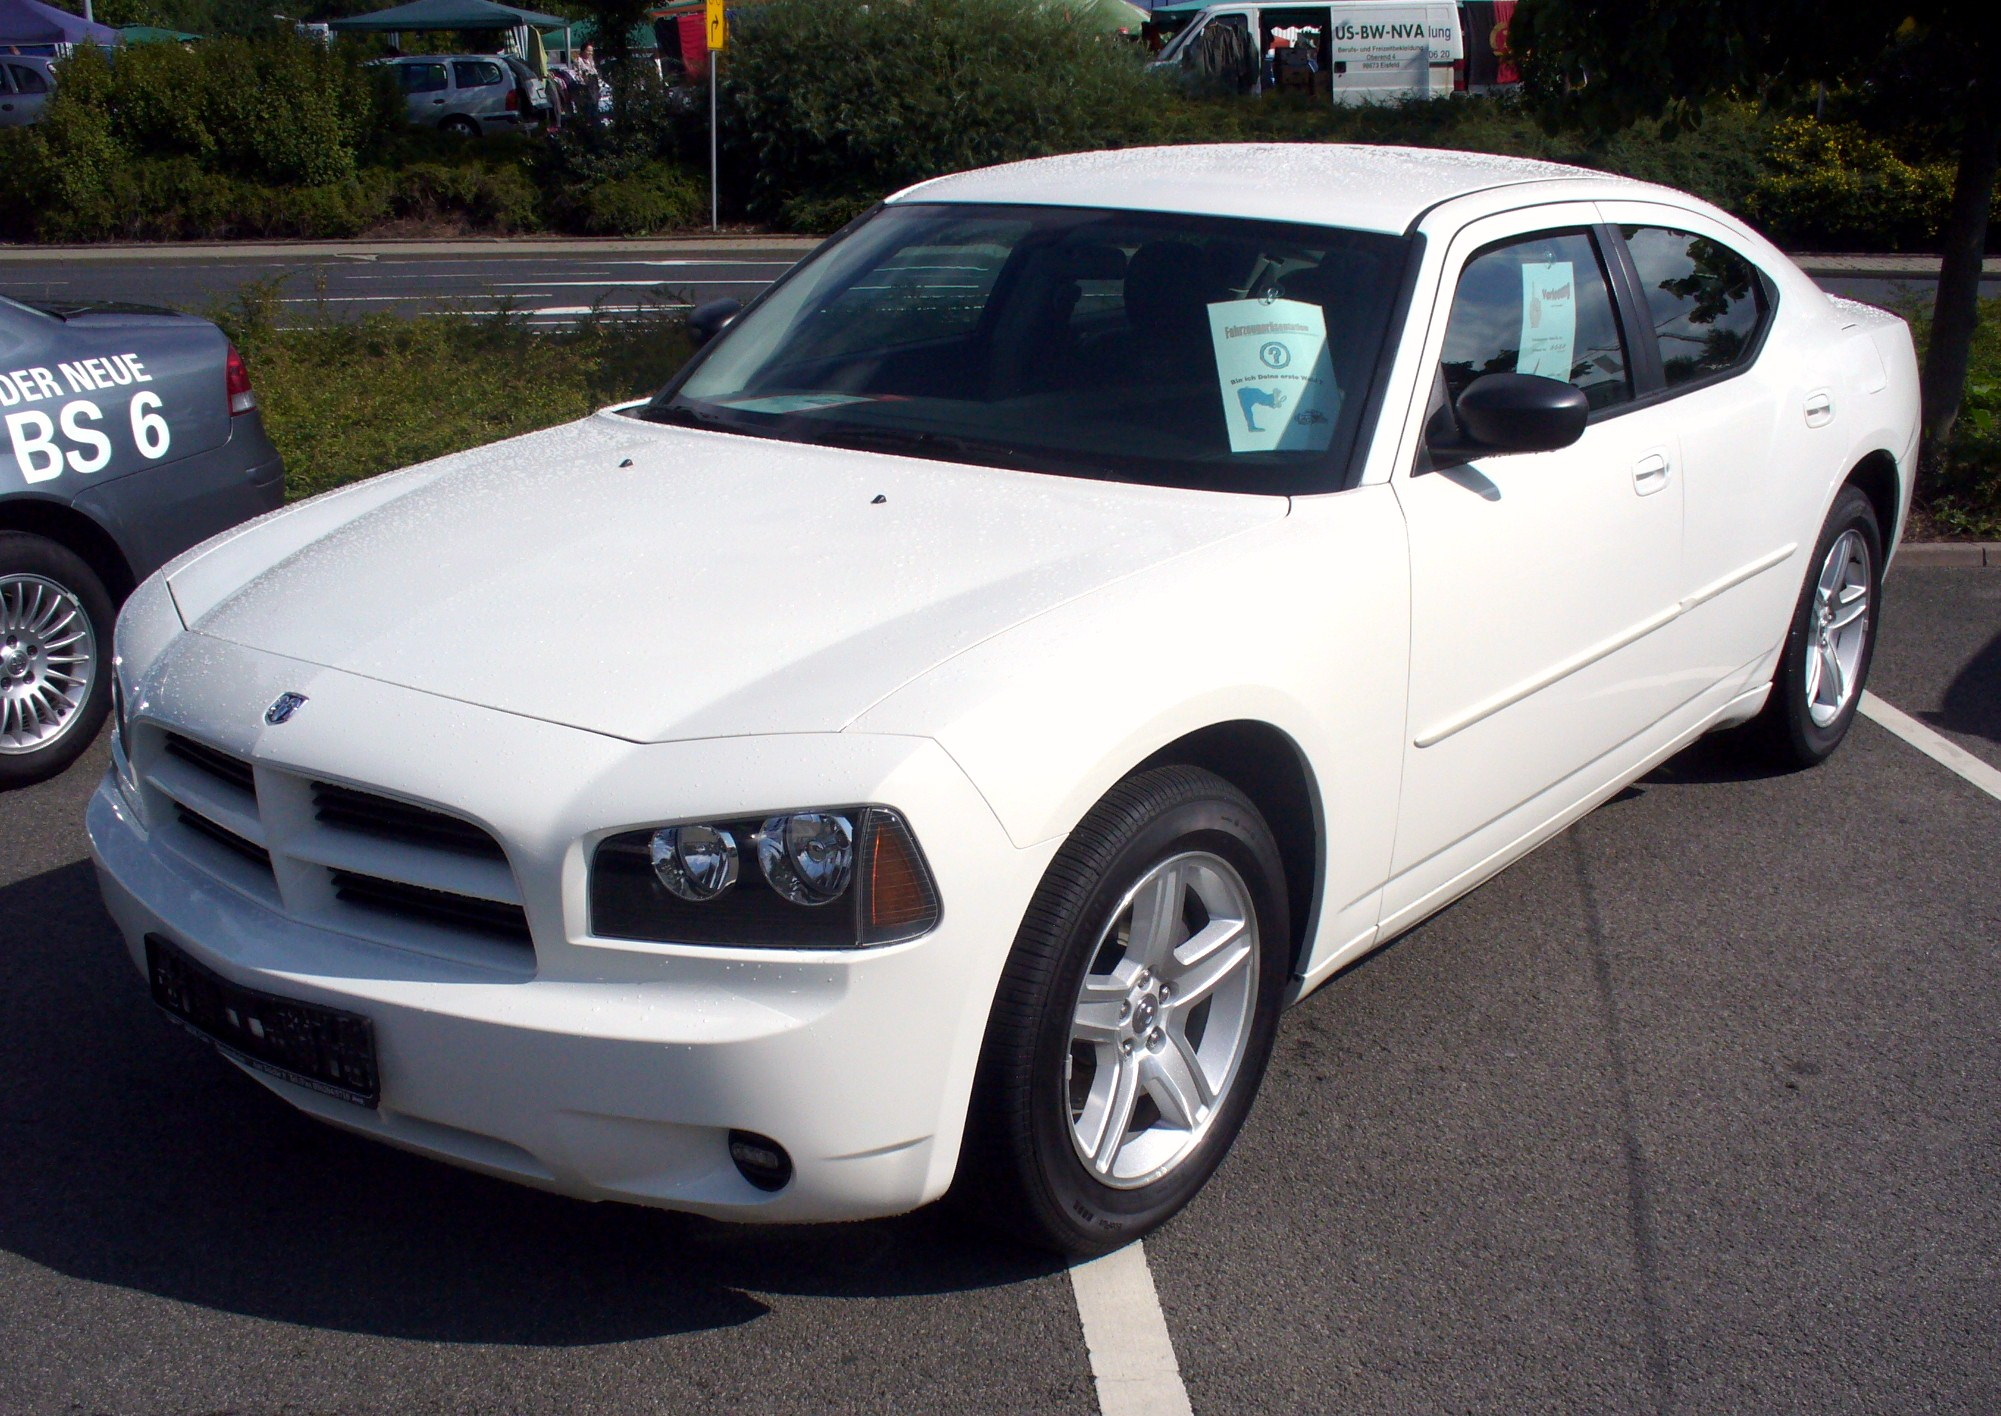 file:dodge charger - wikimedia commons